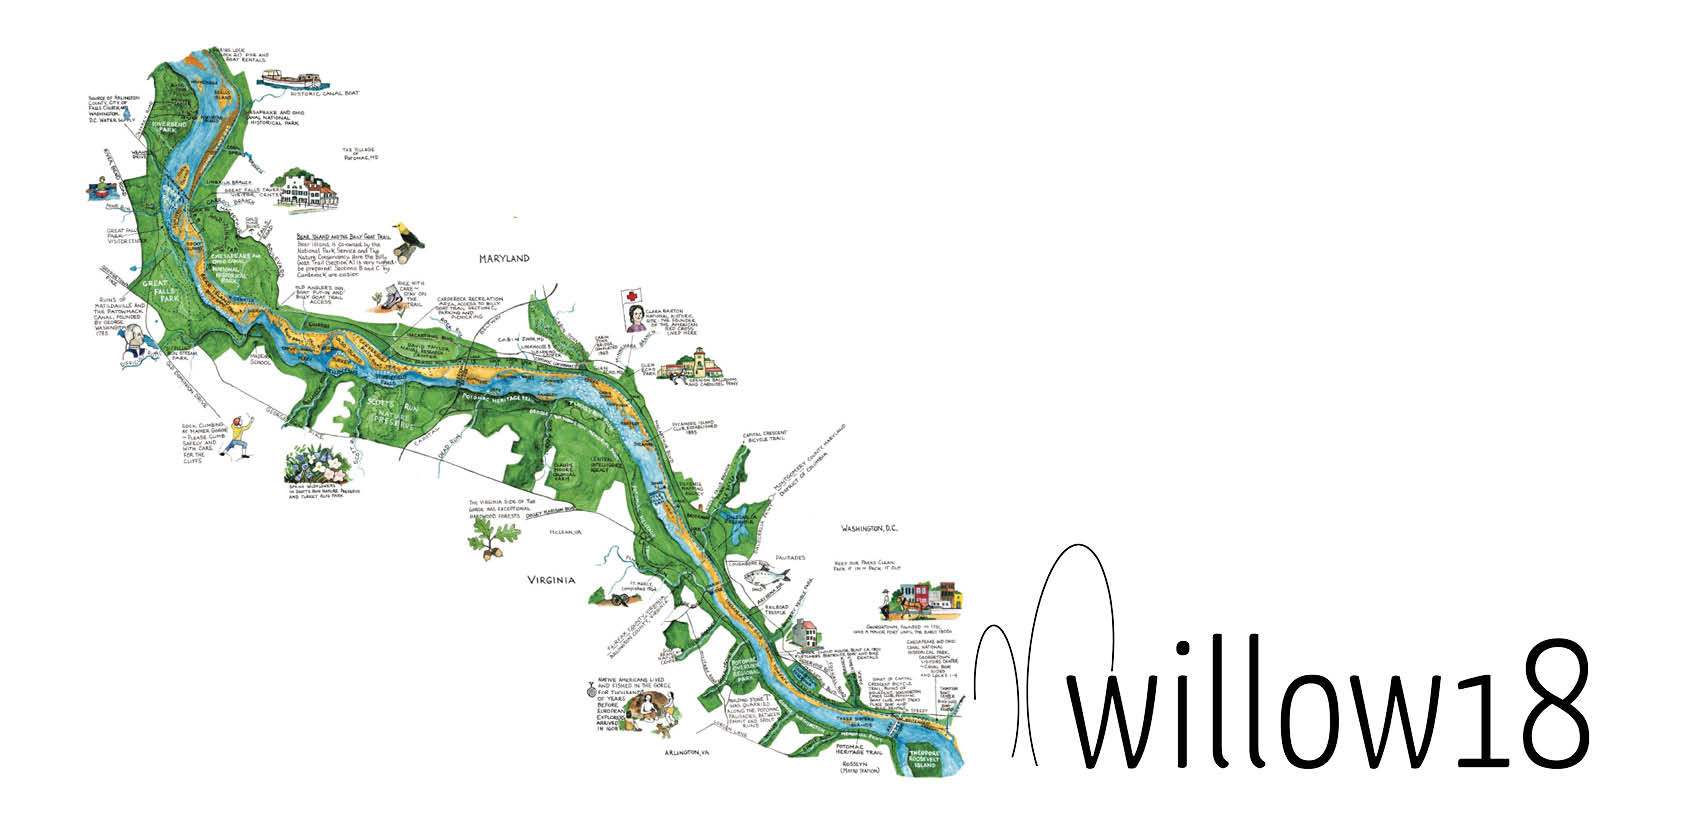 2019 Willow18 -